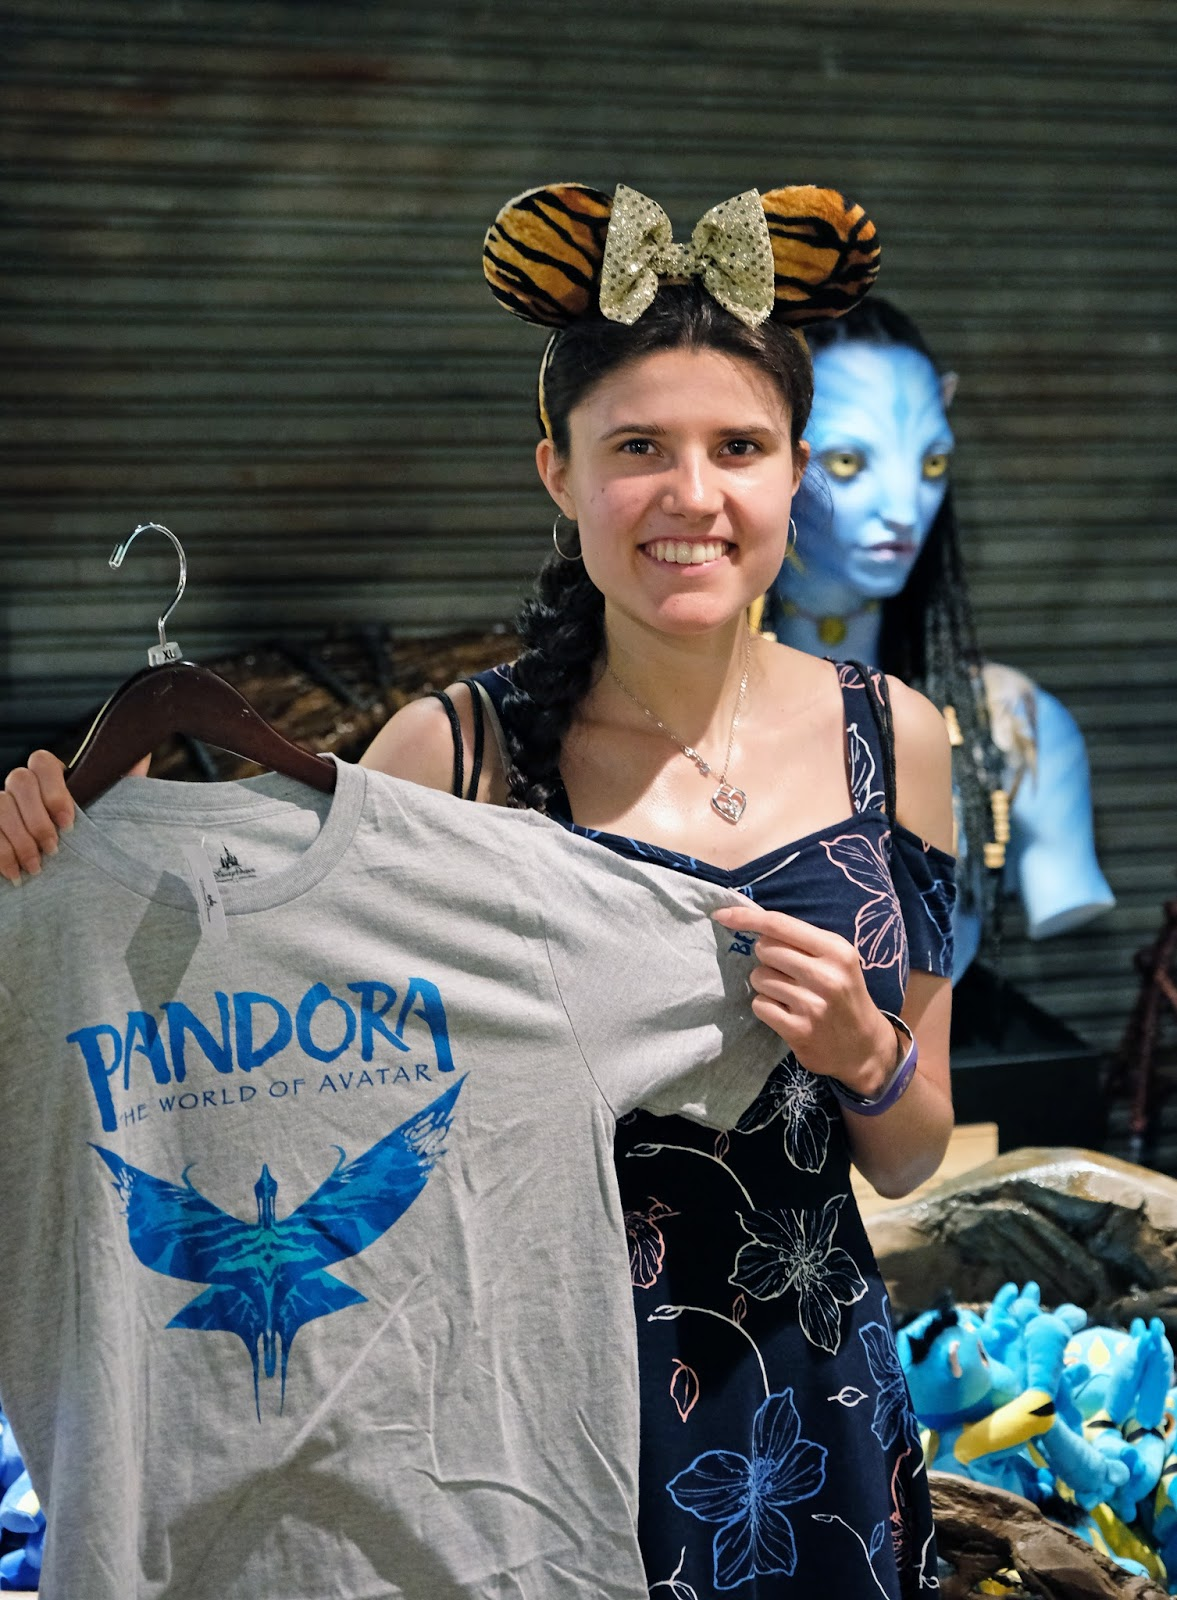 Pandora - World of Avatar merchandise